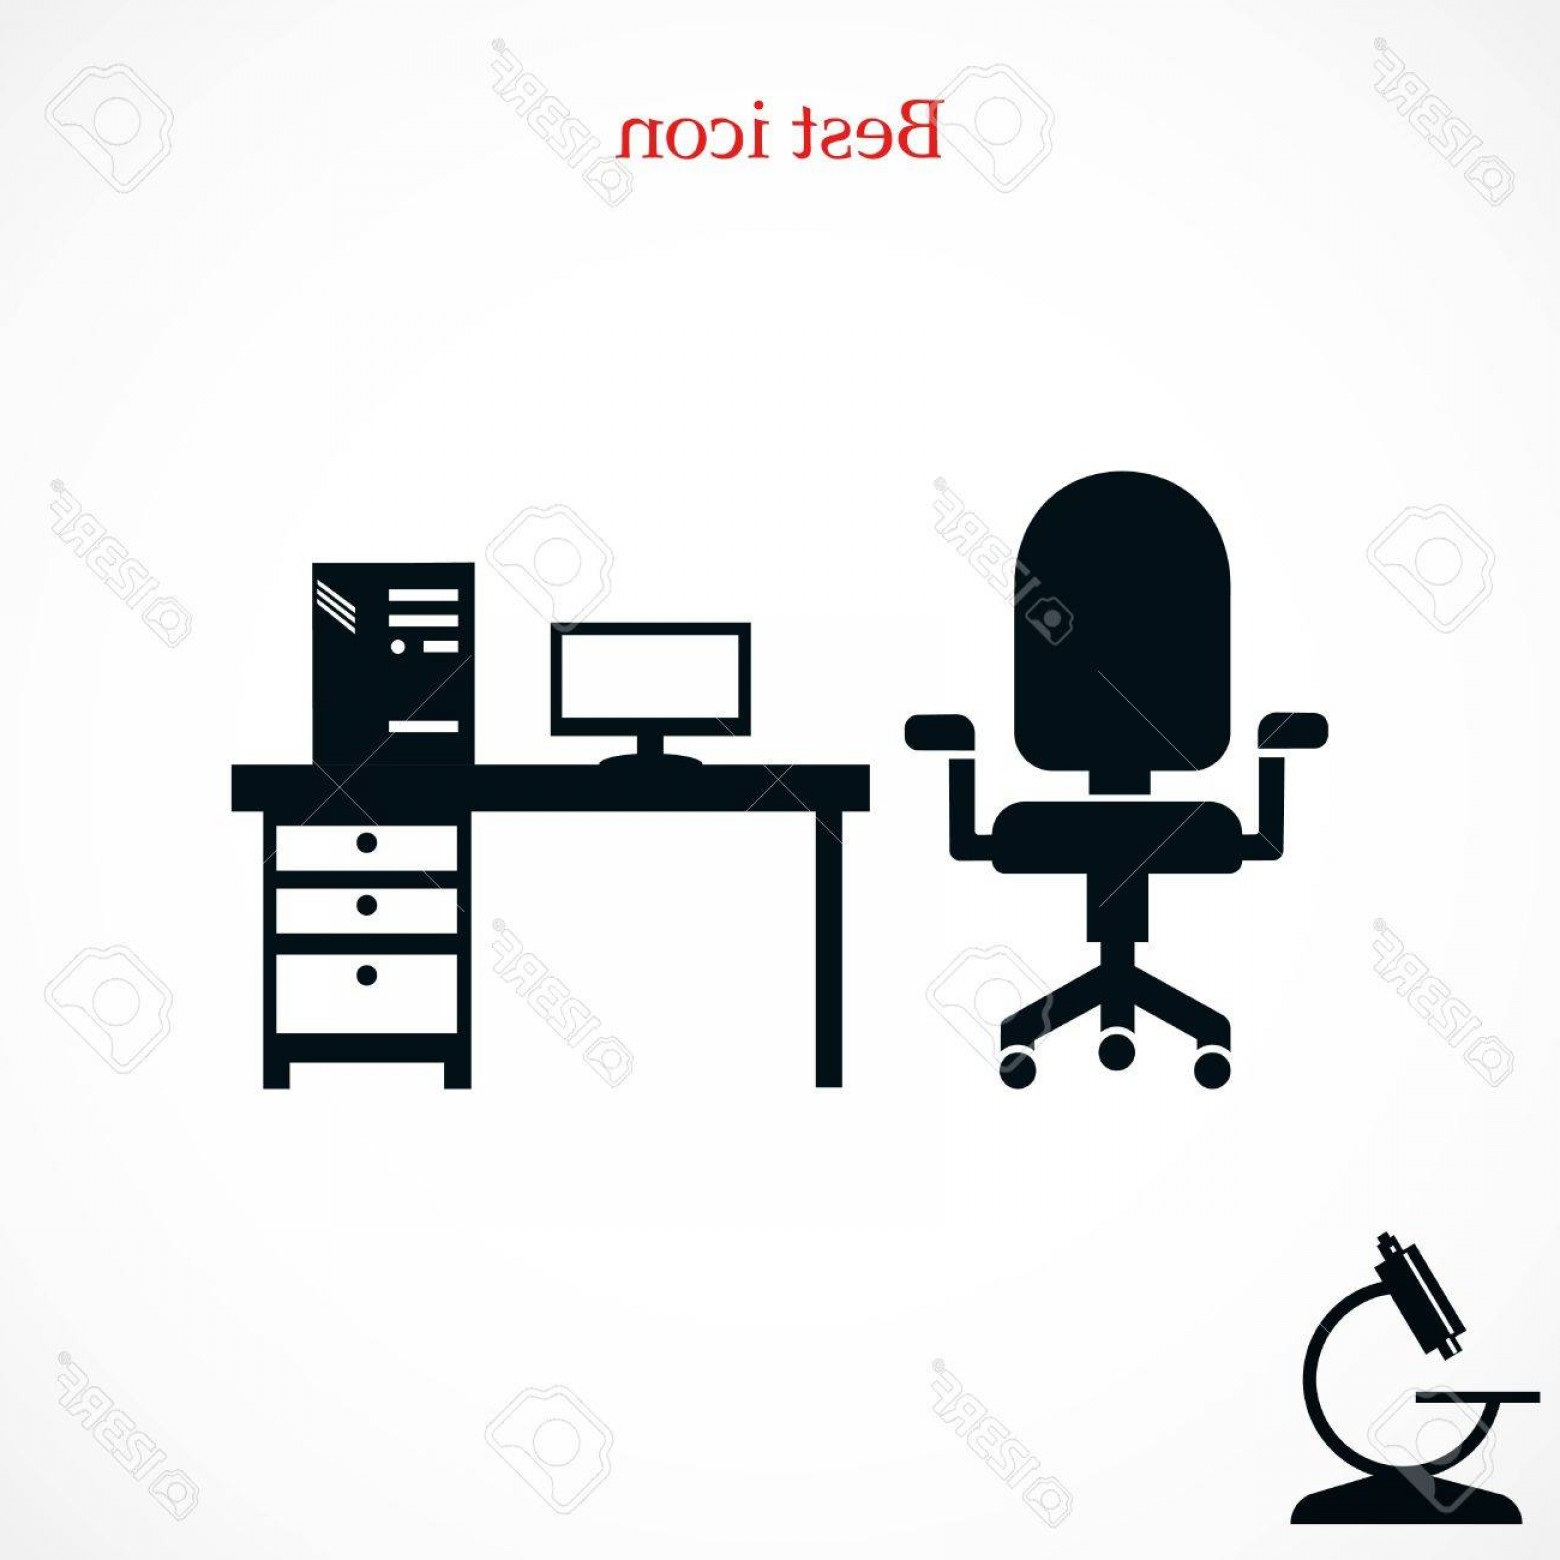 Computer Vector Icon Flat: Photostock Vector Computer Vector Illustration Icon Flat Design Best Vector Icon